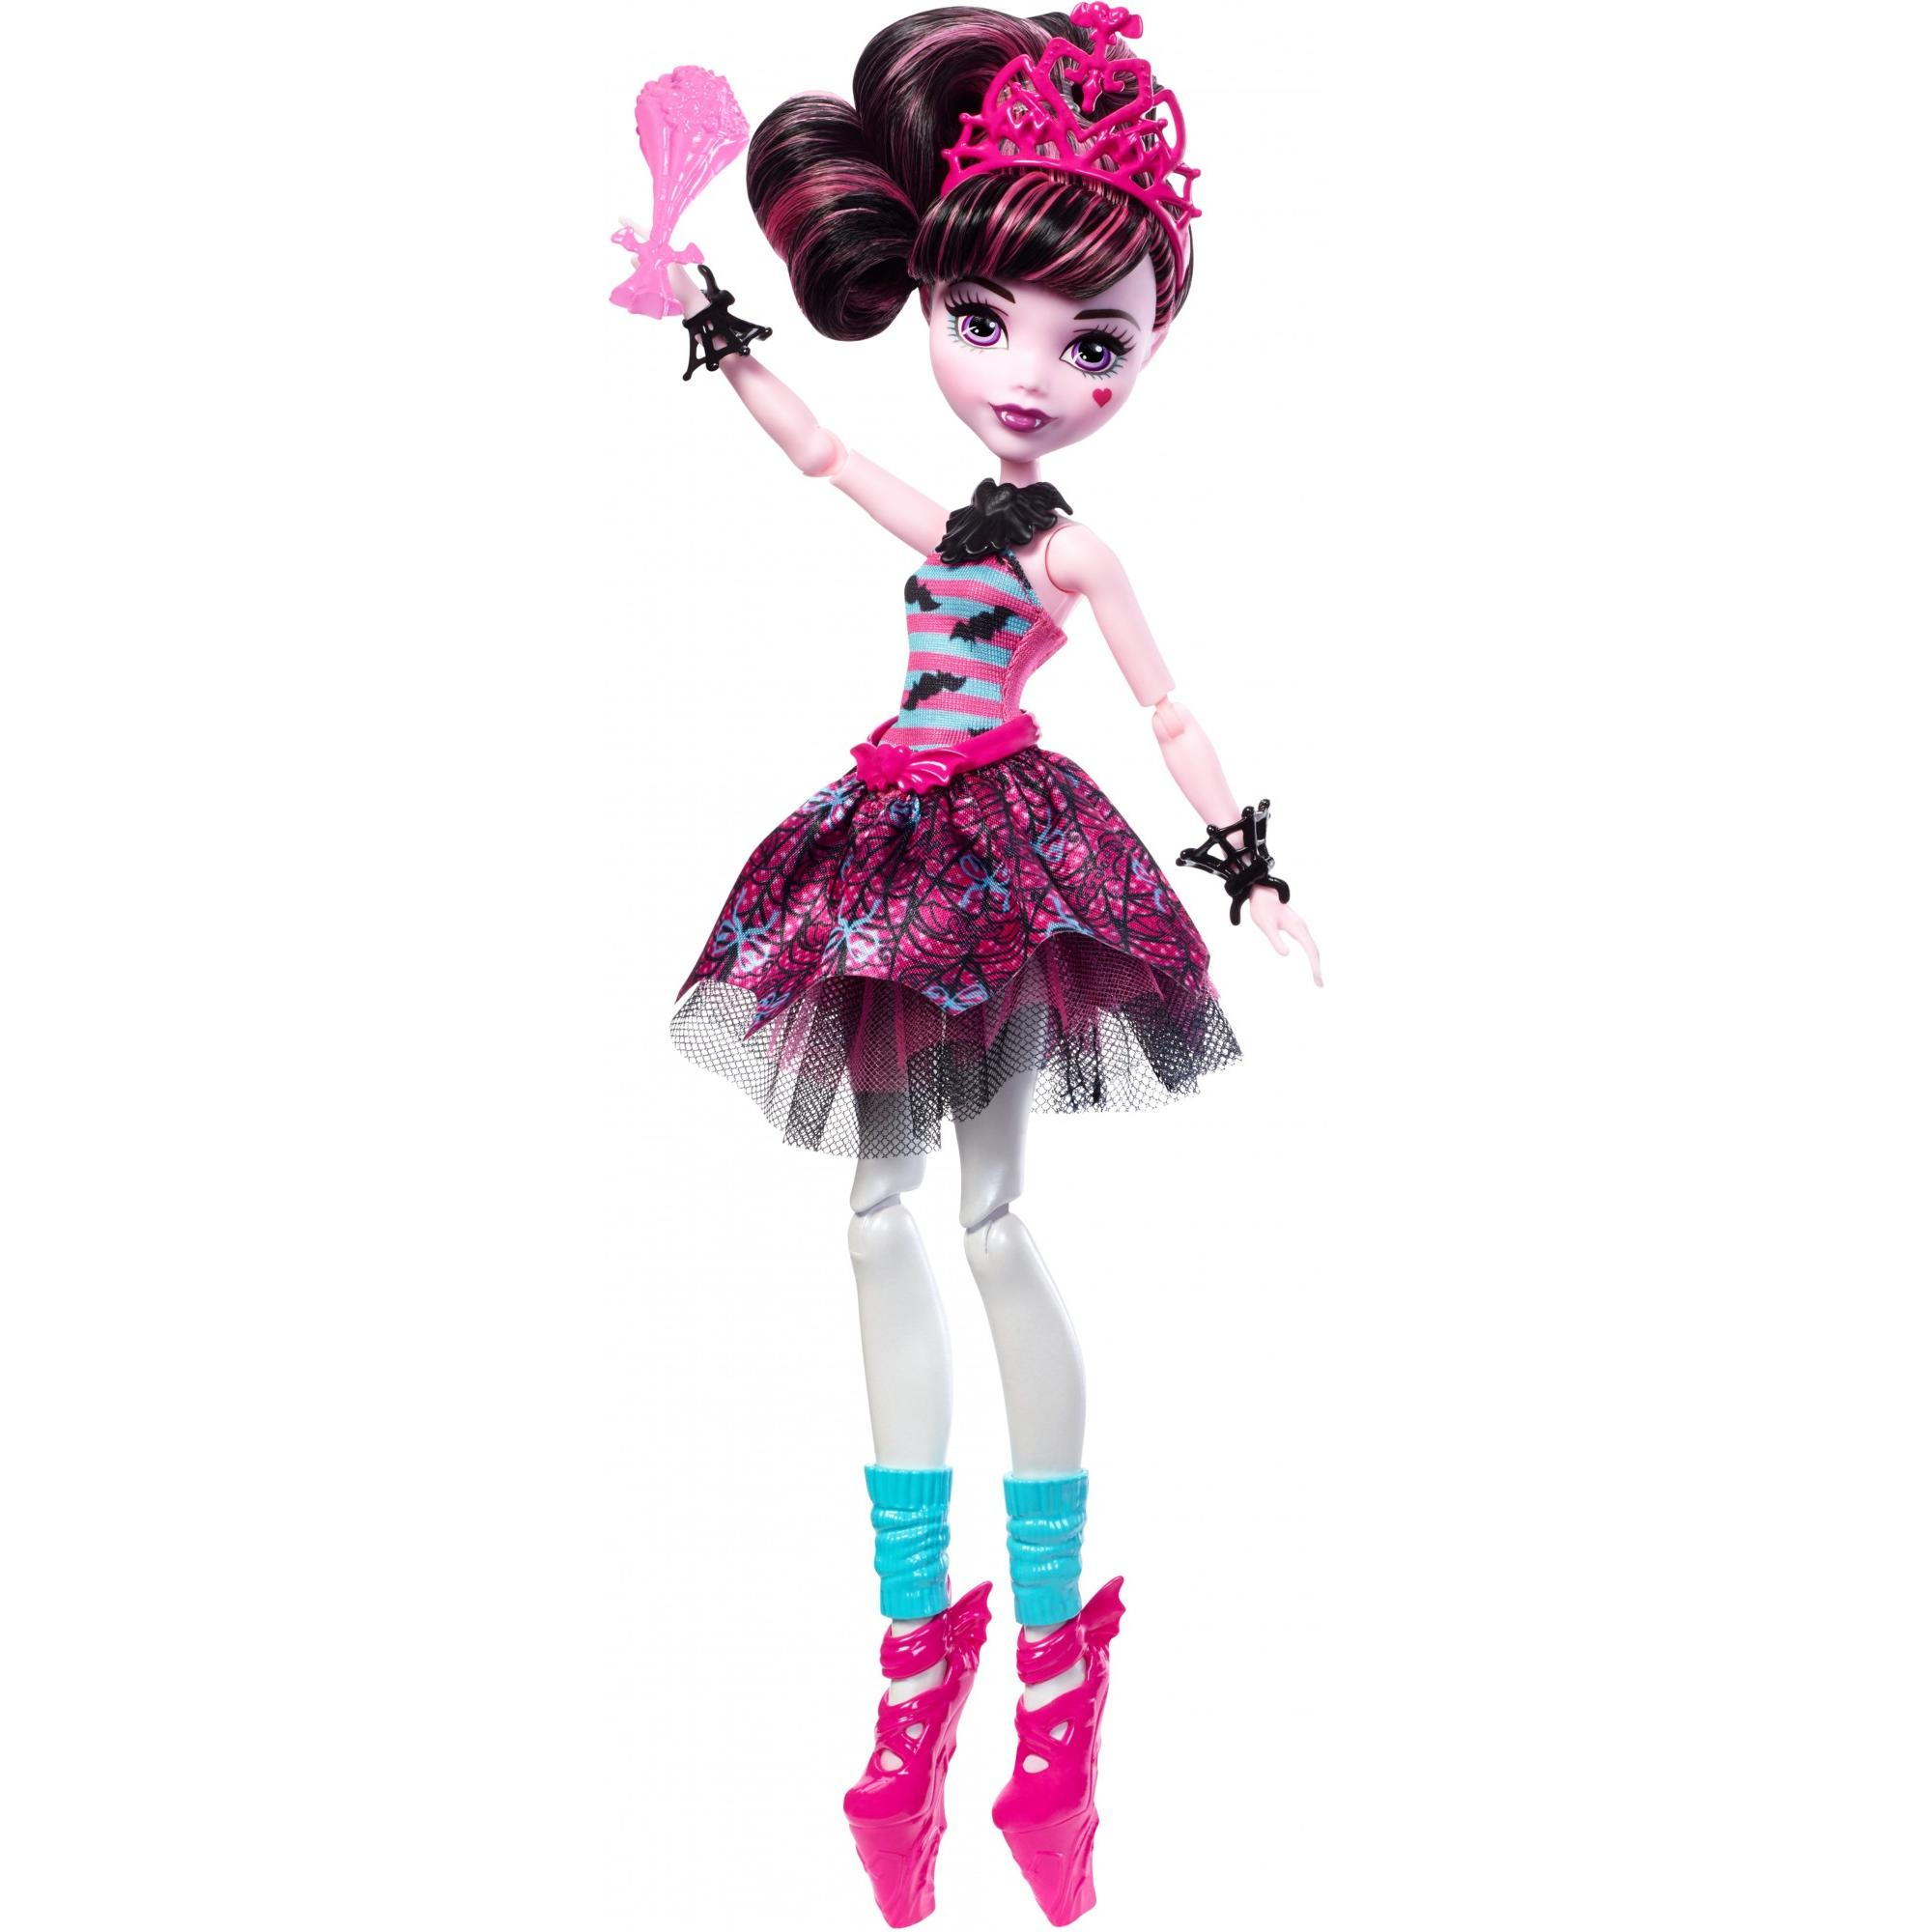 Monster High Ballerina Ghouls Draculaura Doll by Mattel